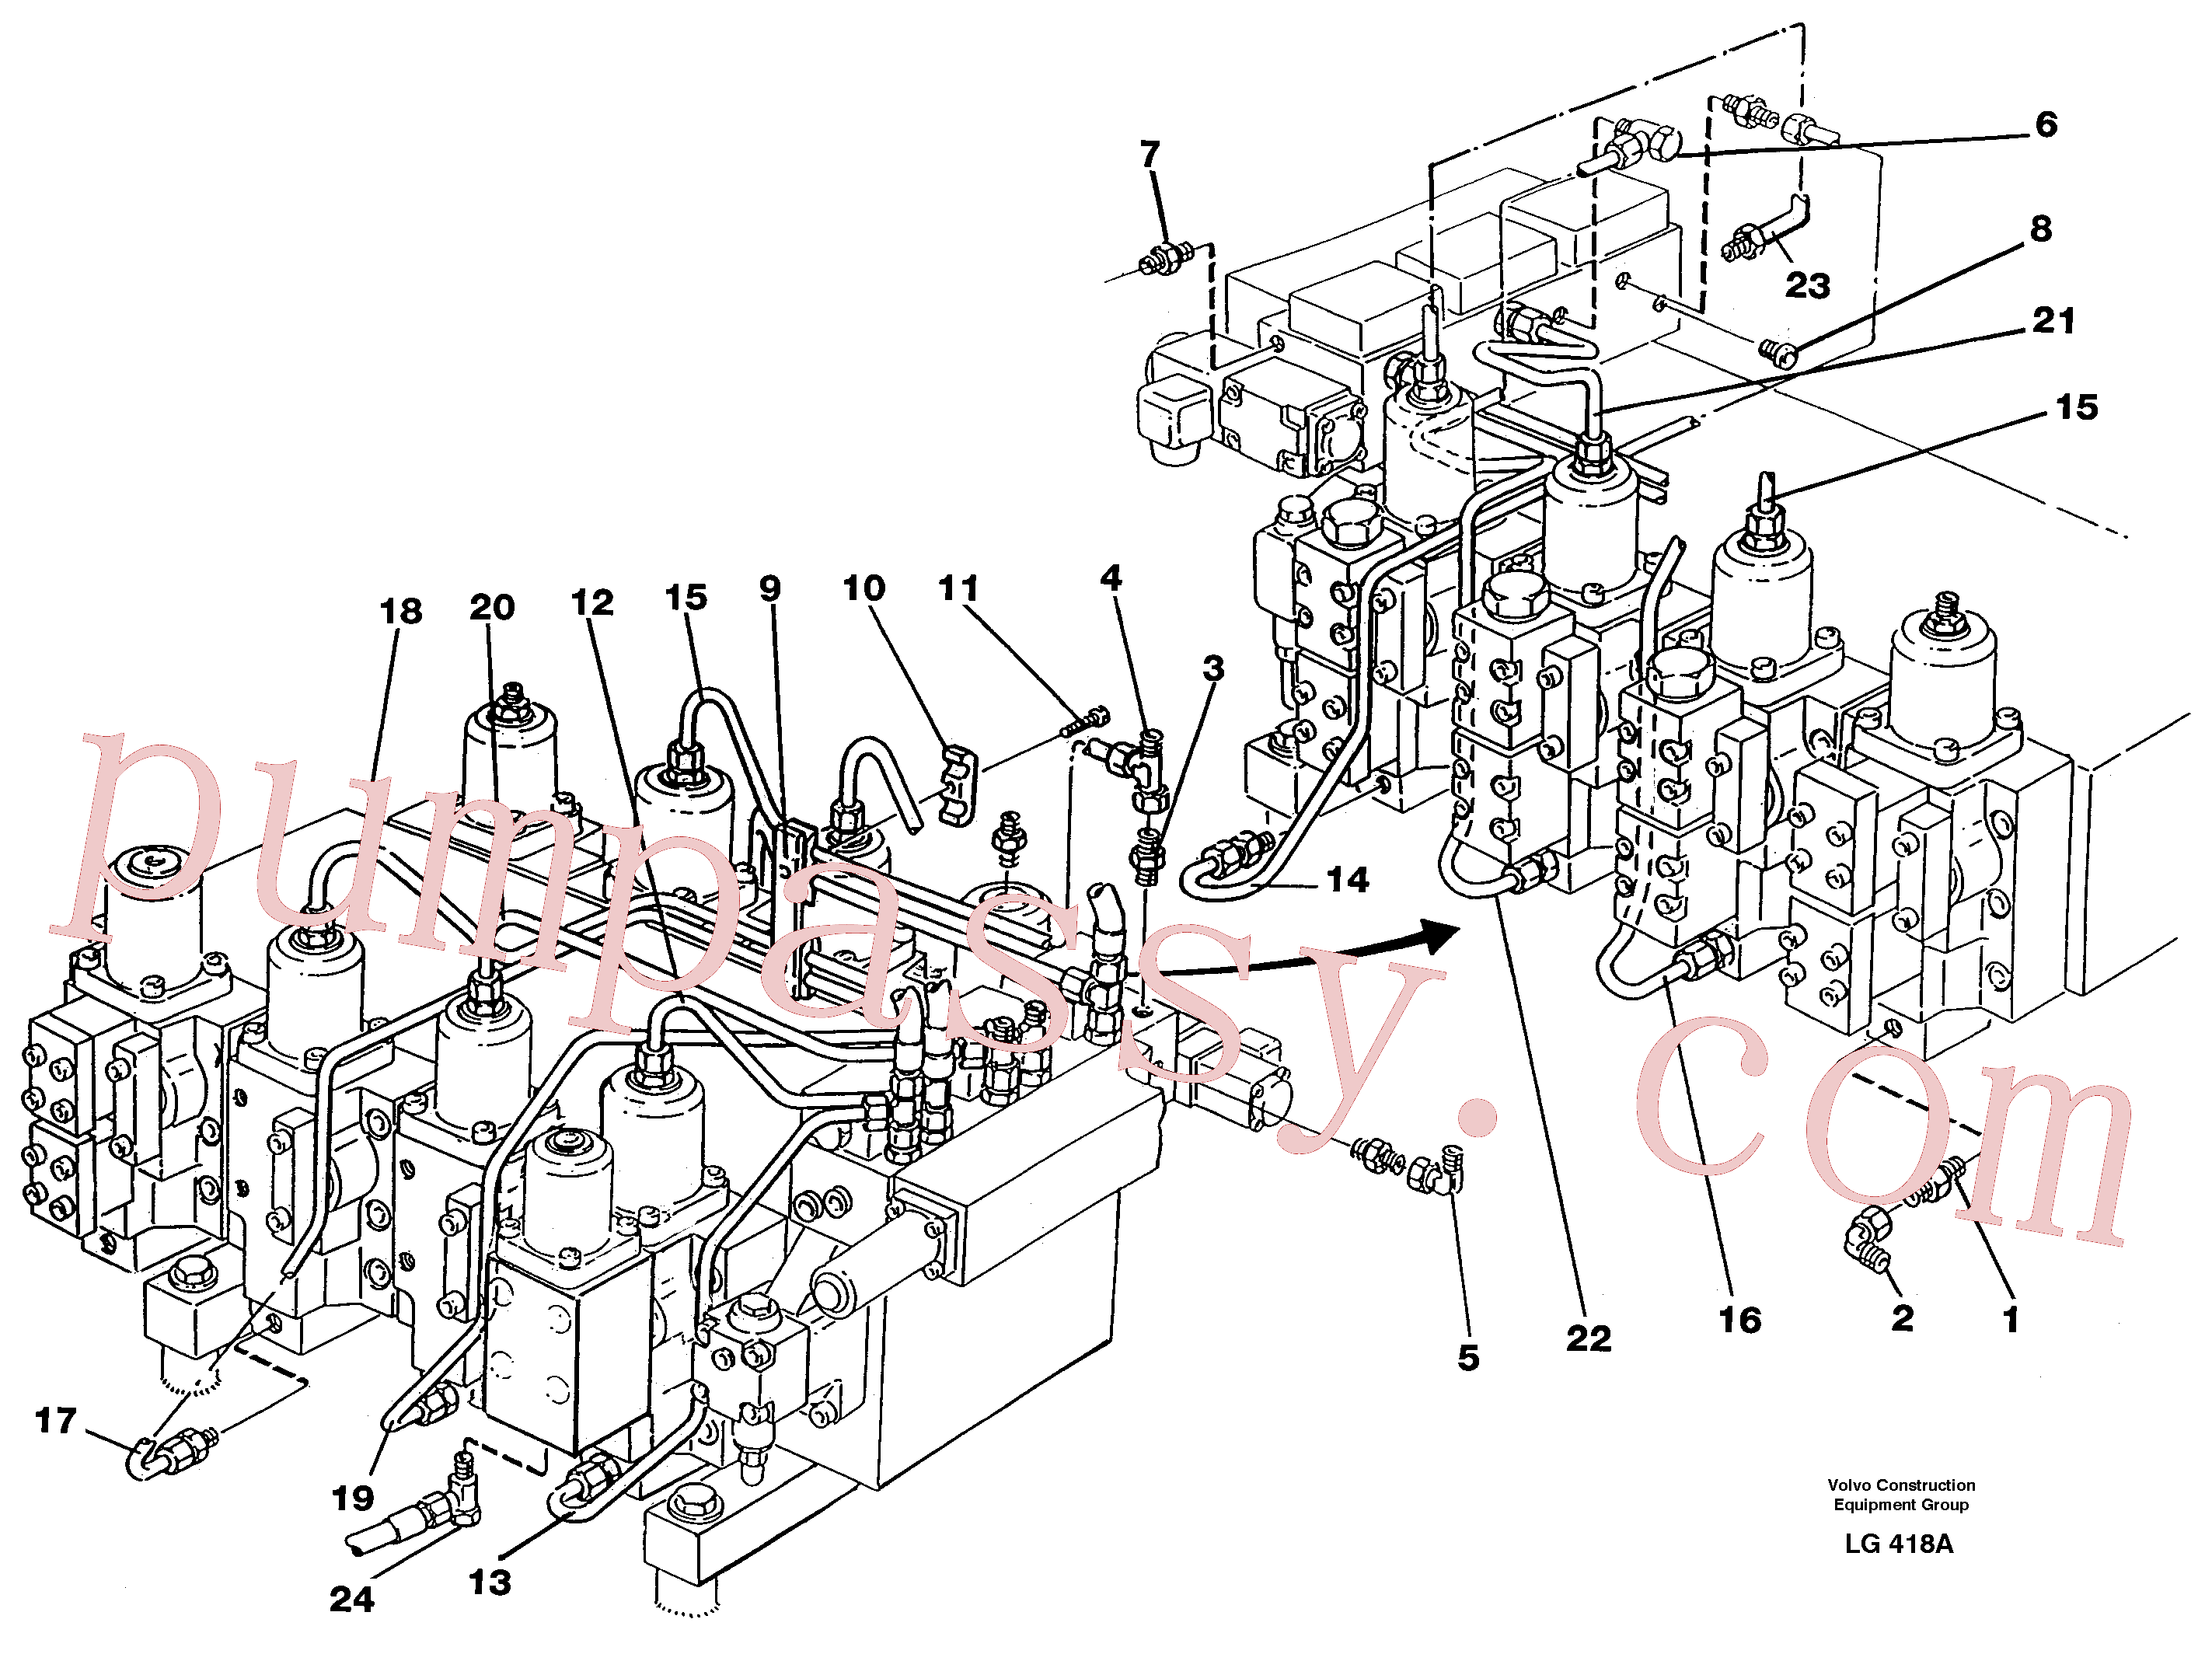 VOE957122 for Volvo Main valve assembly, tubes connections(LG418A assembly)